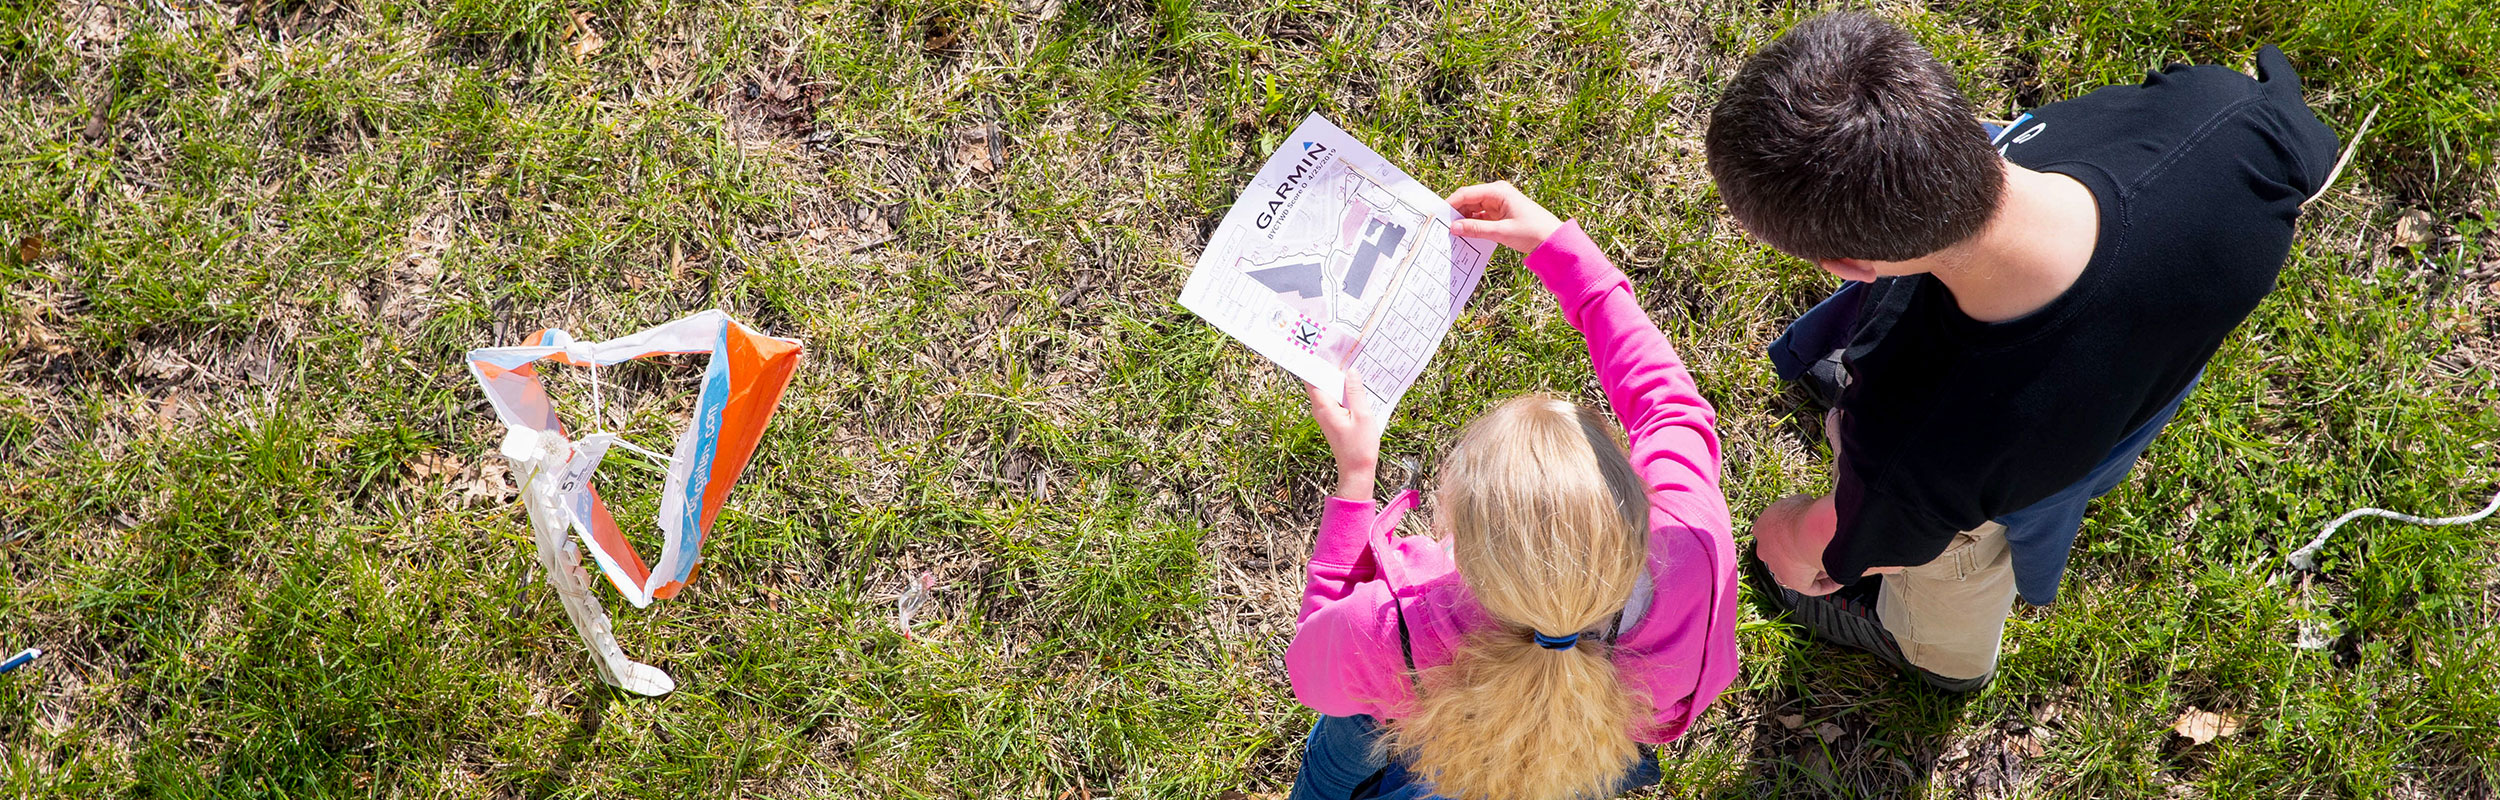 A bird'seye shot of a preteen boy and girl looking at a map for an orienteering challenge